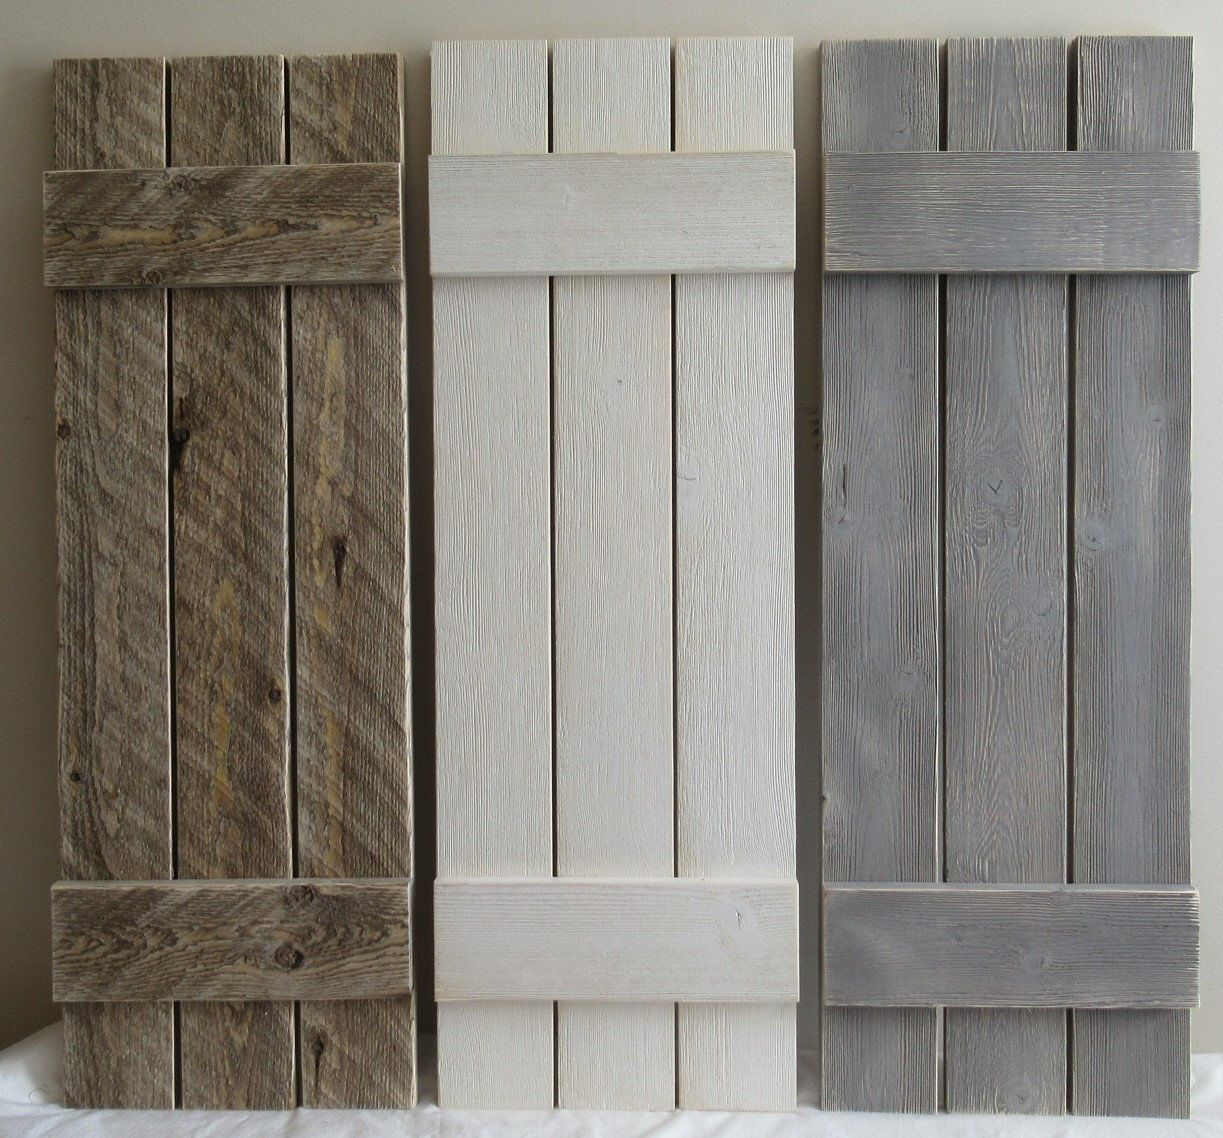 A Pair Of Rustic Interior Shutters Decorative Wall